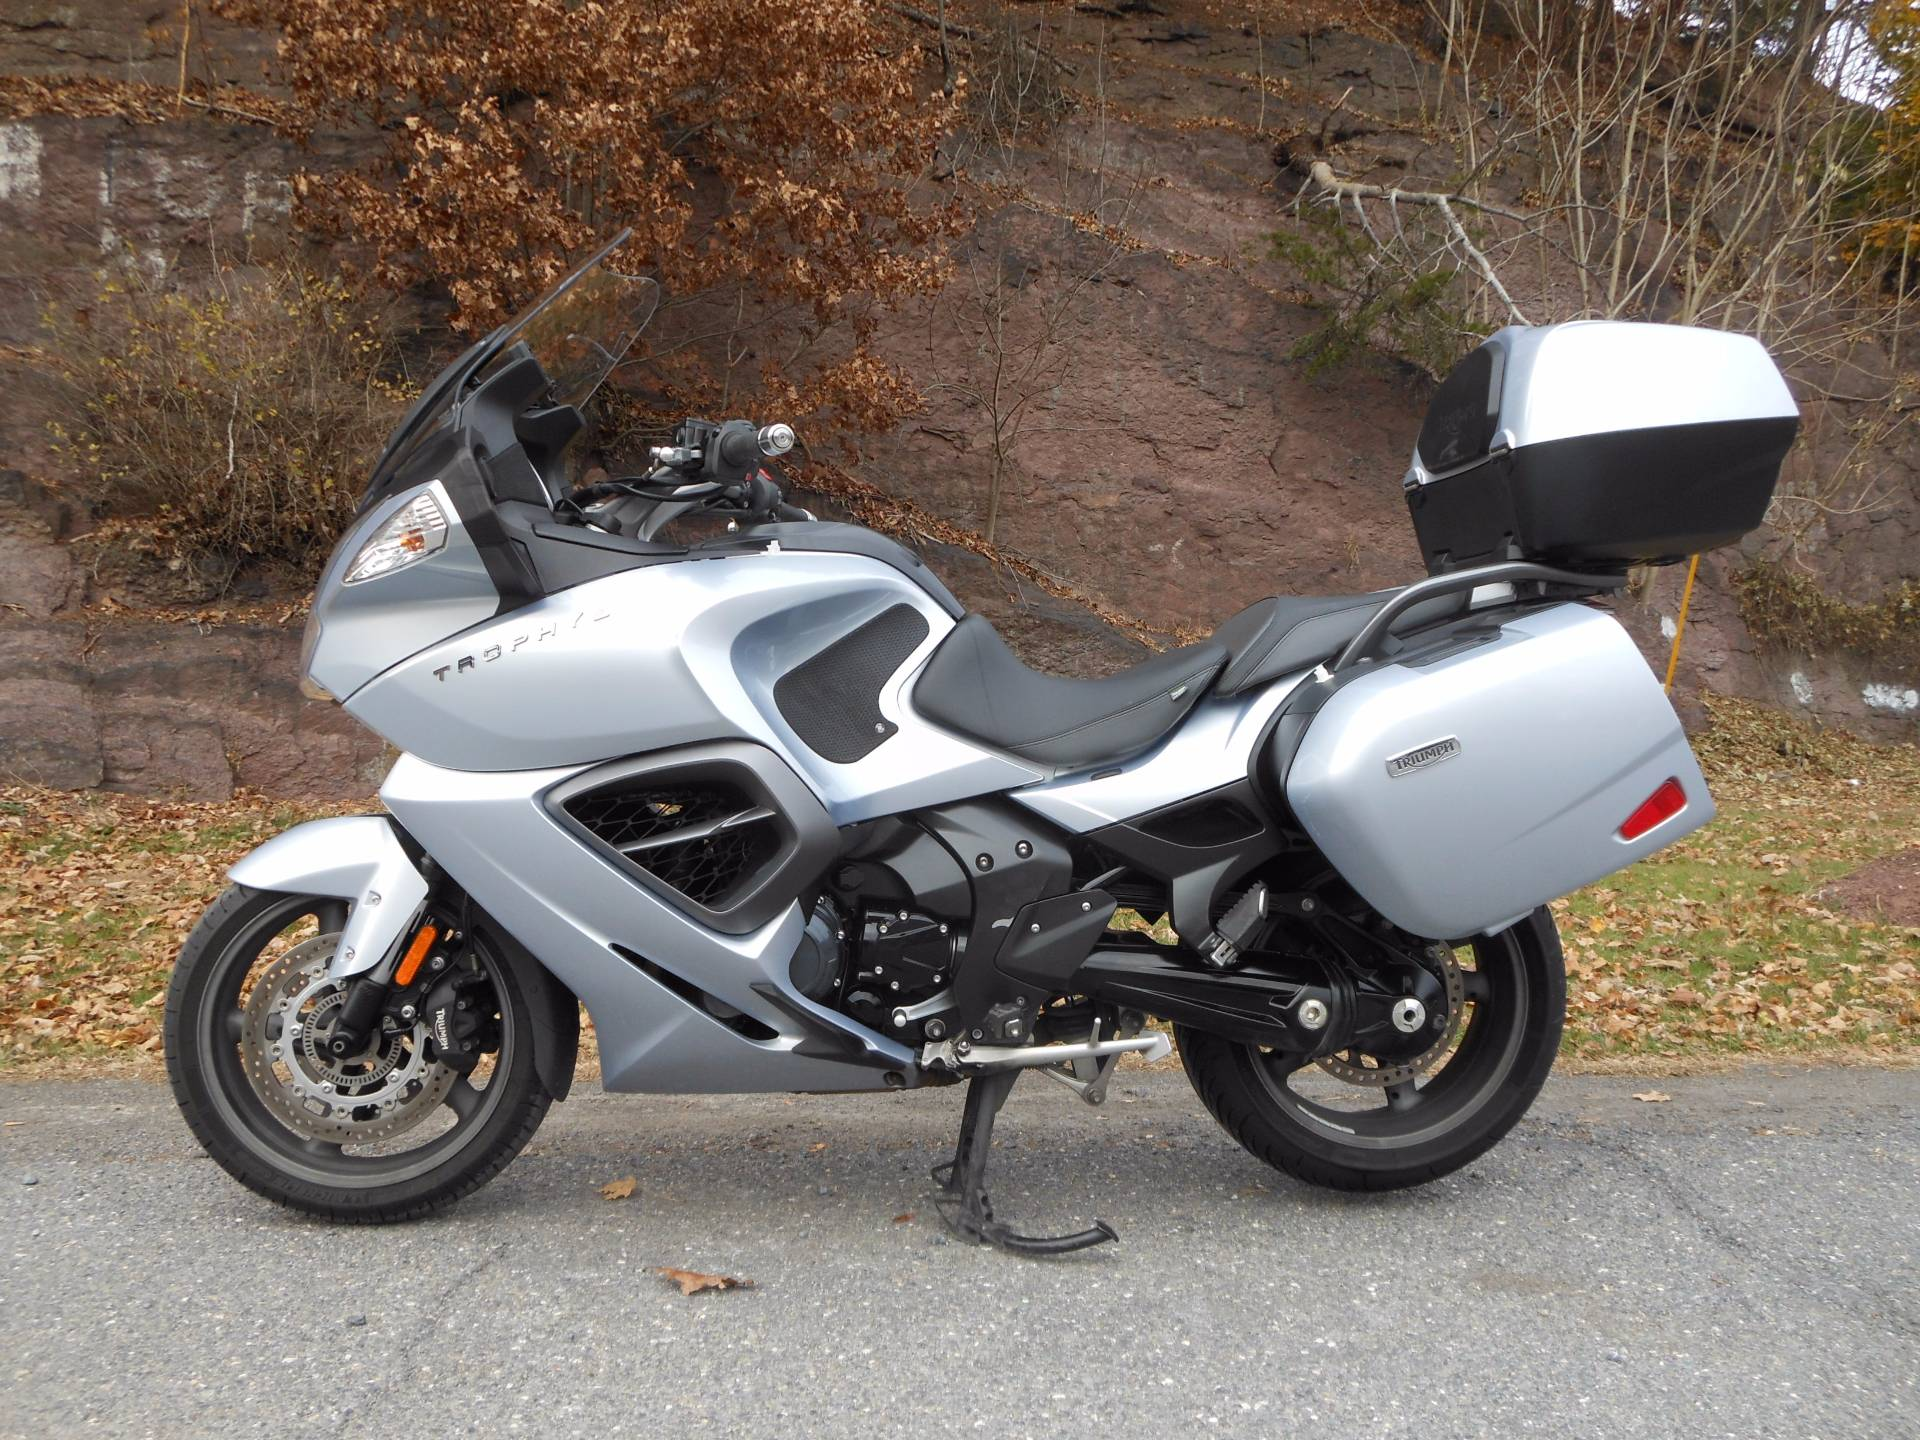 2014 Triumph Trophy SE ABS in Port Clinton, Pennsylvania - Photo 2